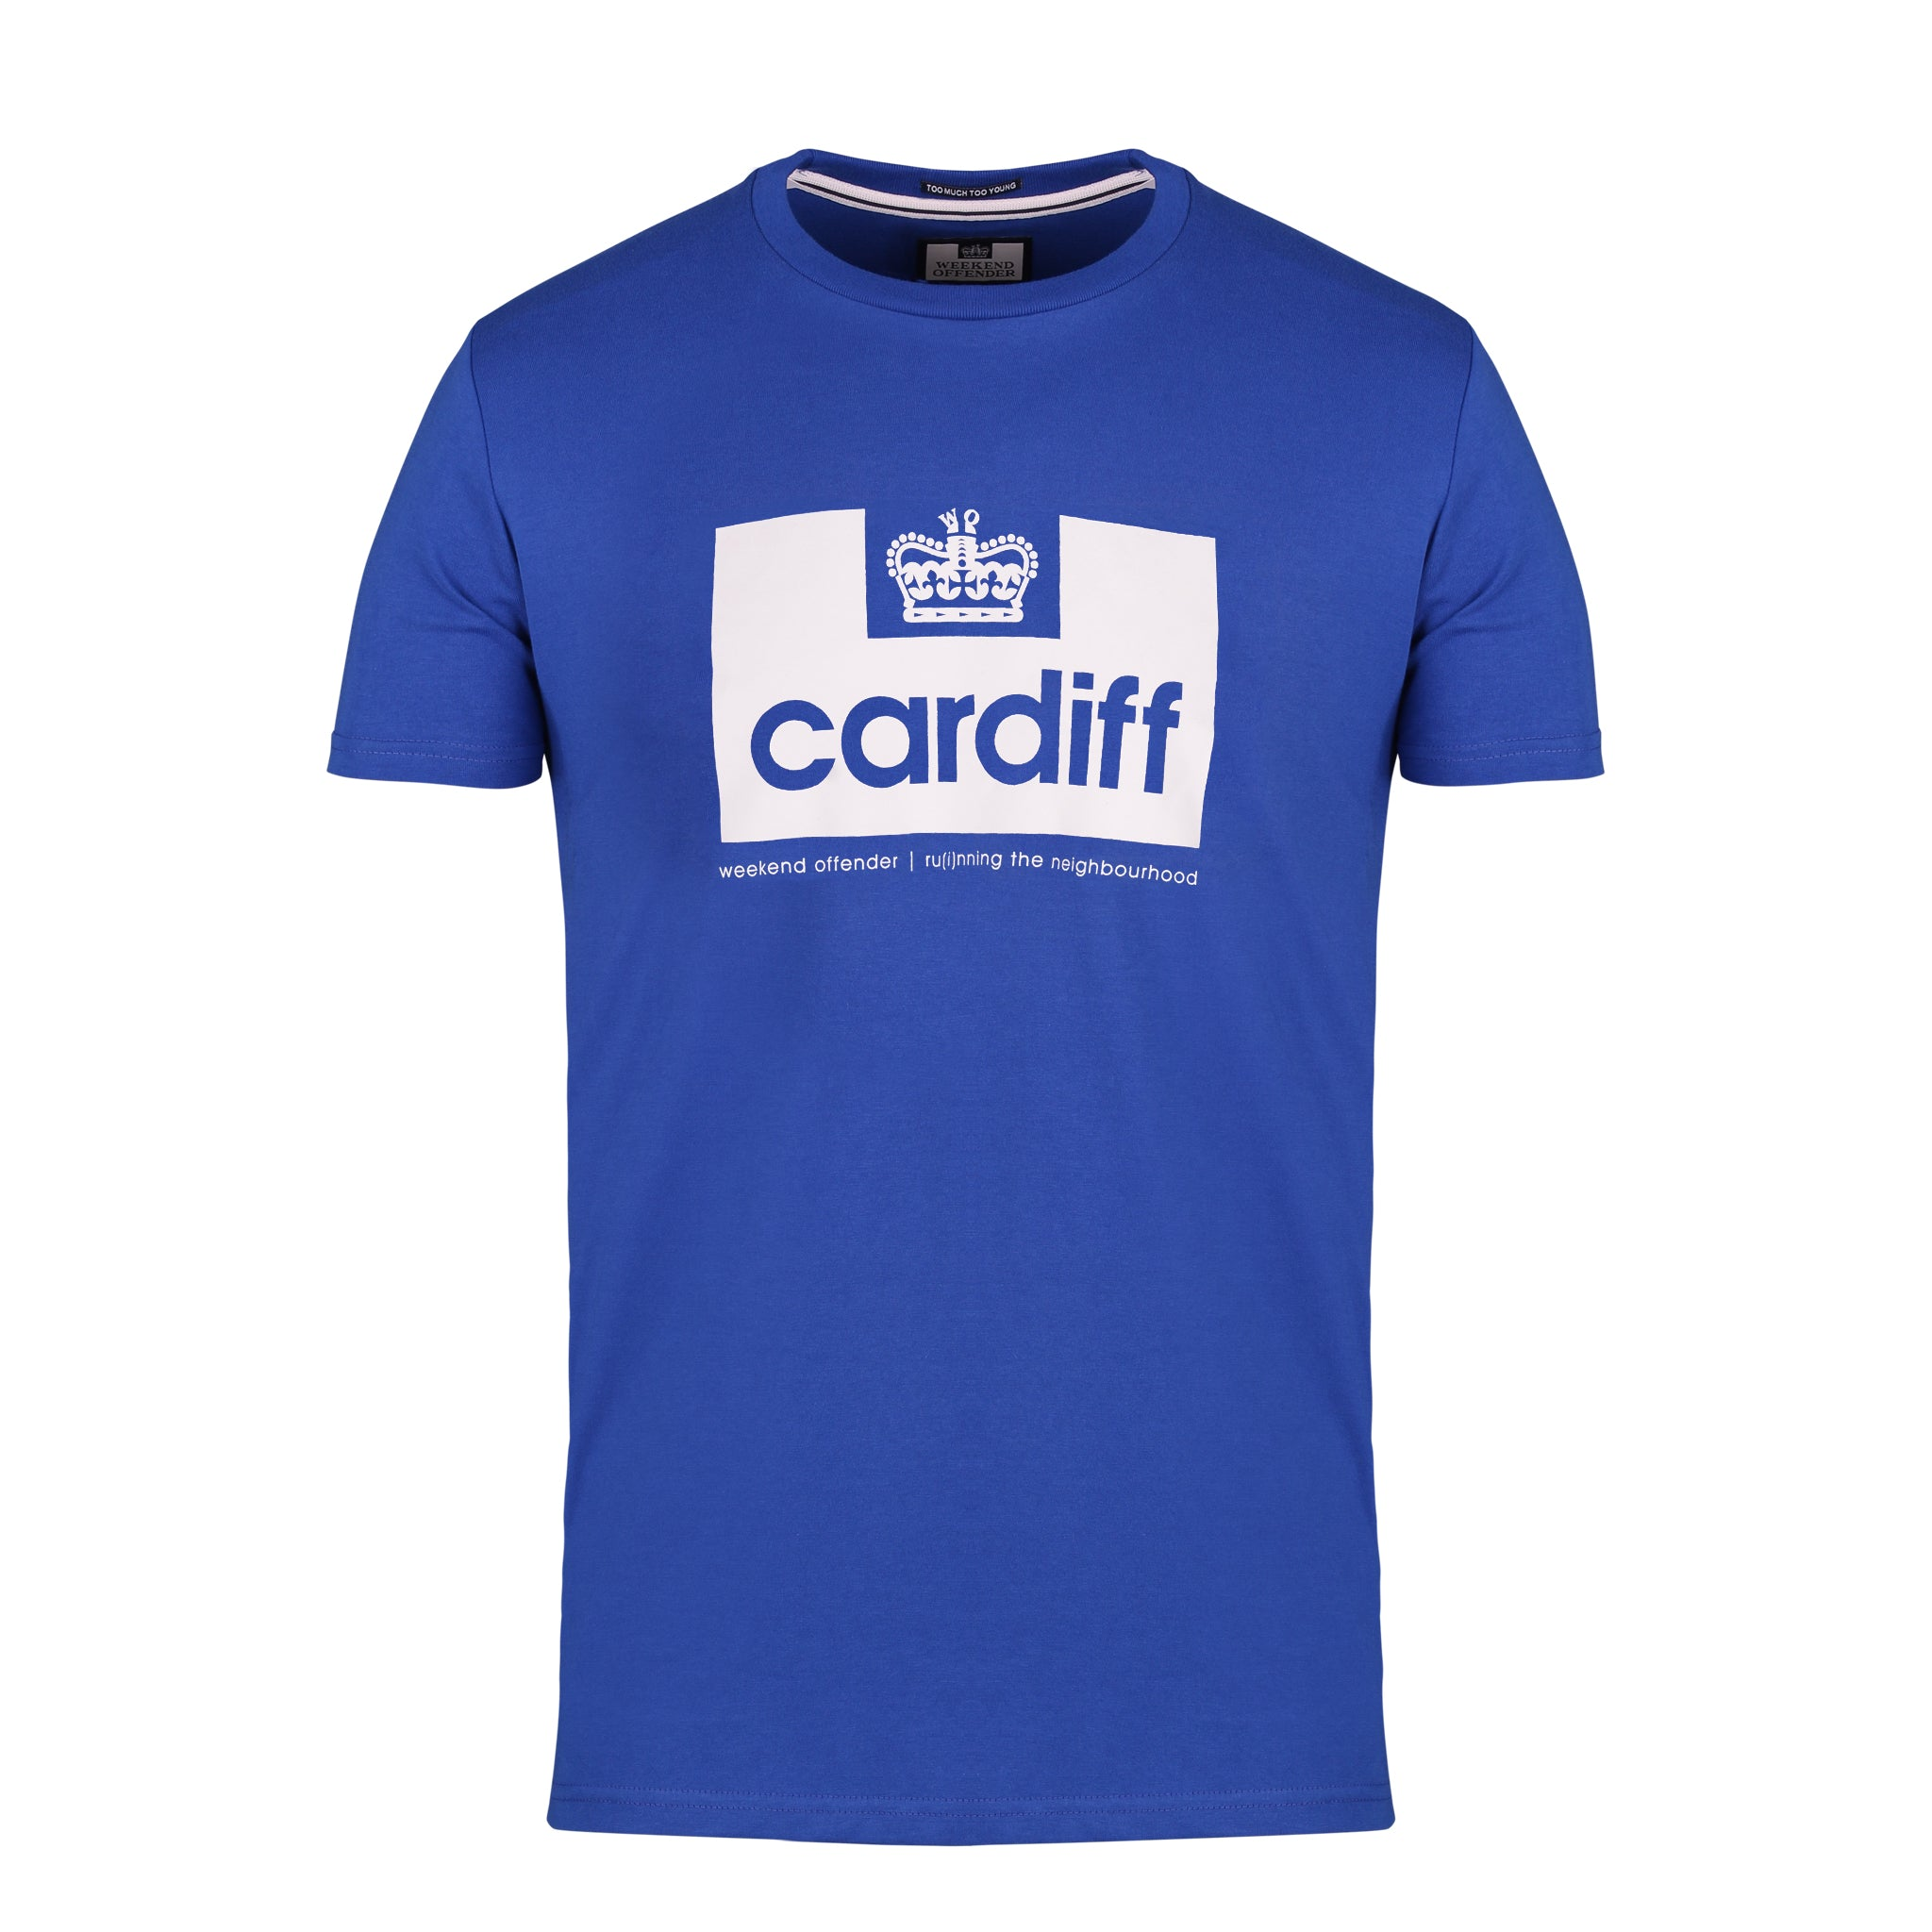 City Series Cardiff Electric